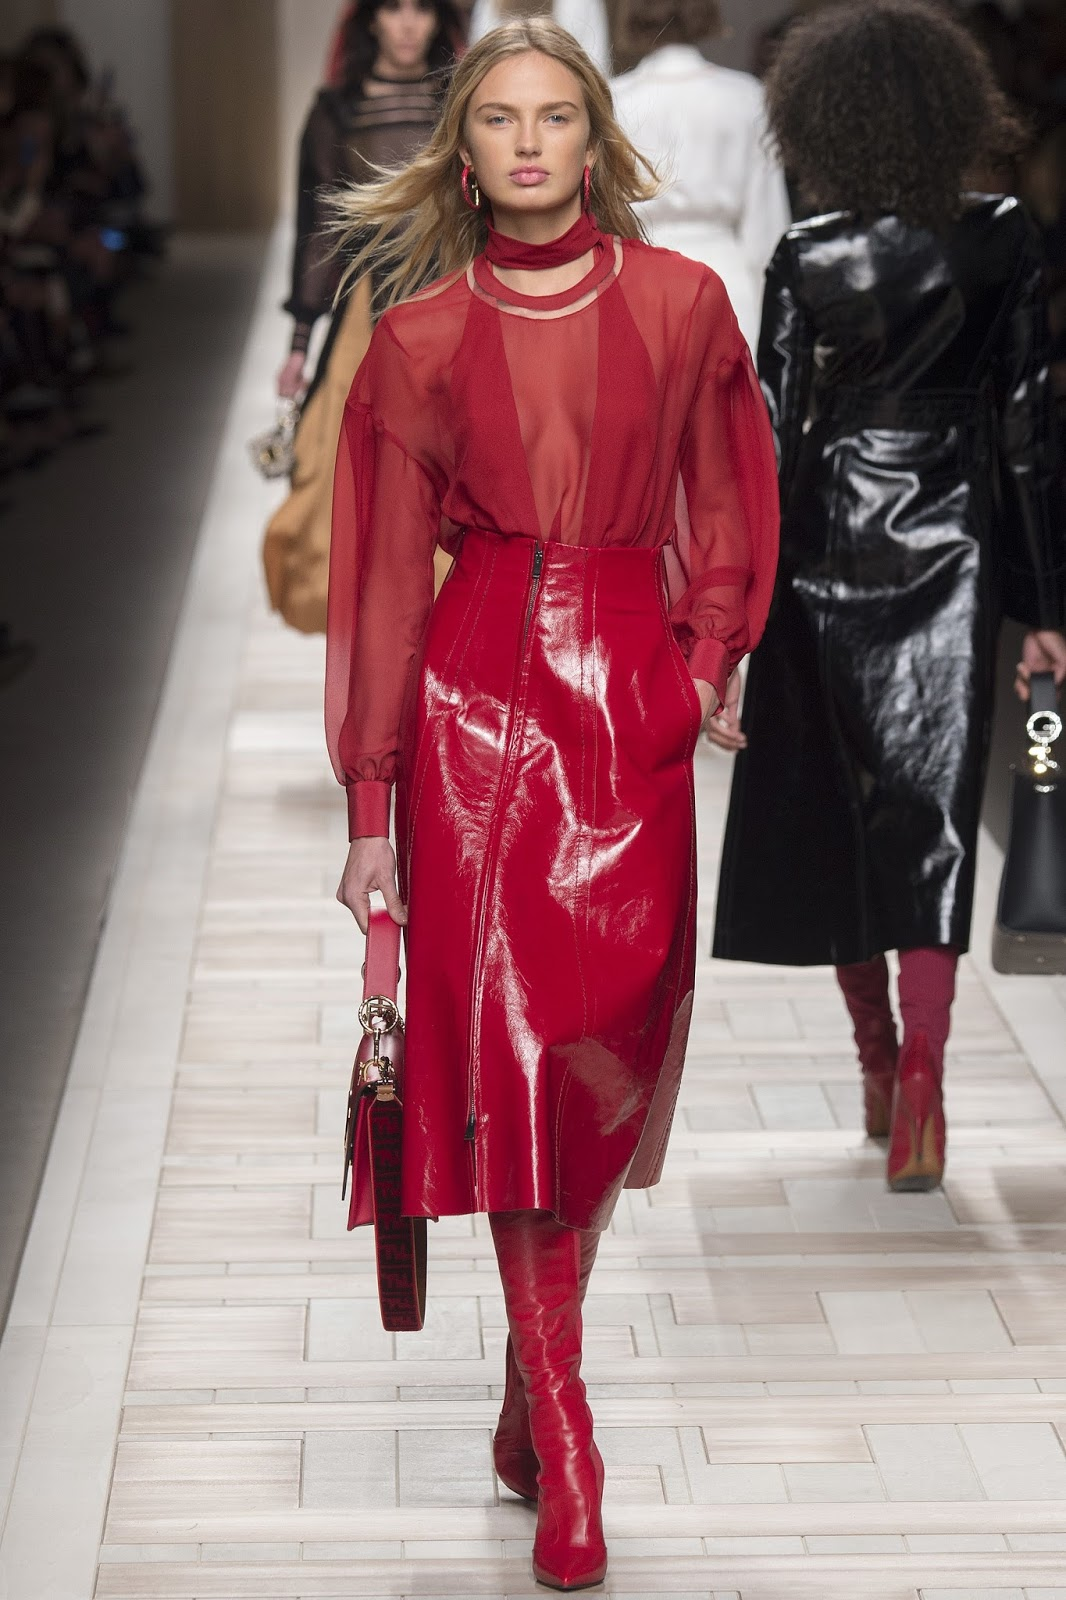 MFW Autumn/Winter 2017 Fall red patent leather skirt